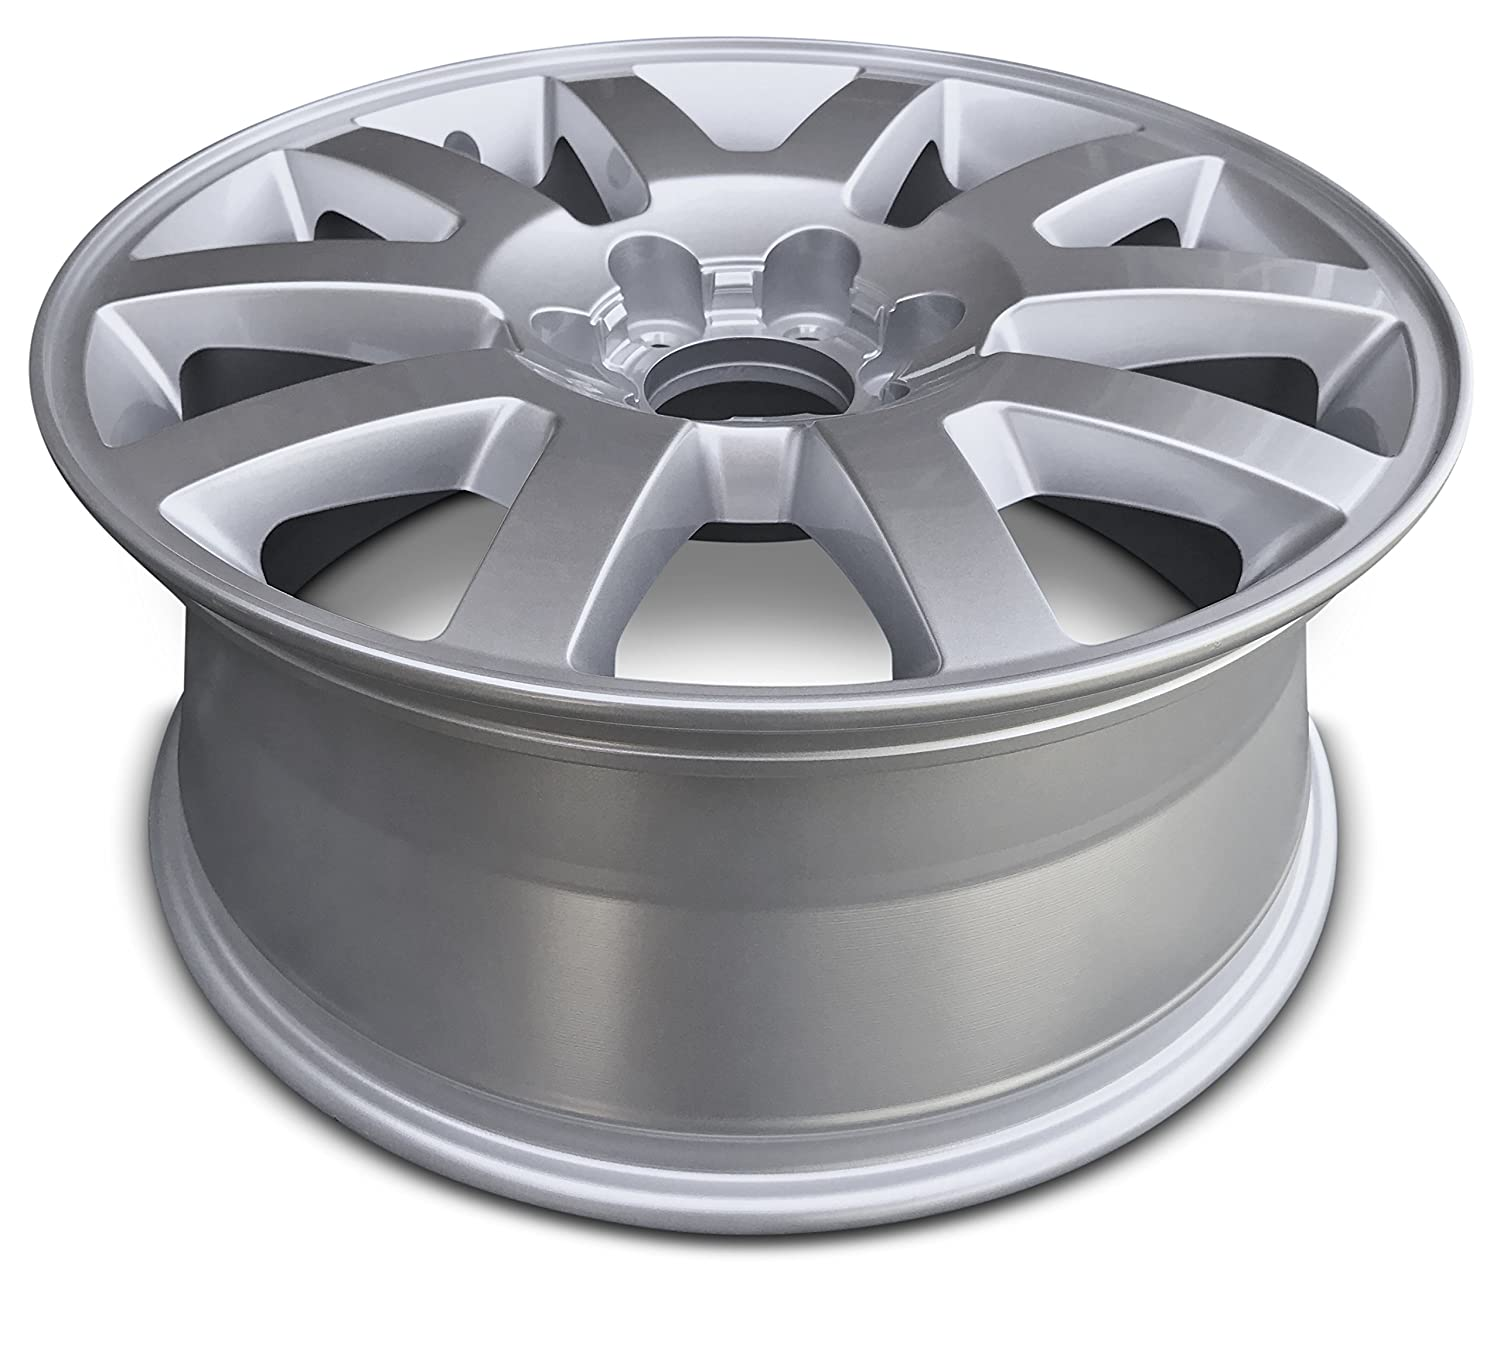 Road Ready Car Wheel For 2010-2014 Ford Expedition 2009-2012 Ford F150 20 Inch 6 Lug Gray Aluminum Rim Fits R20 Tire Full-Size Spare Exact OEM Replacement